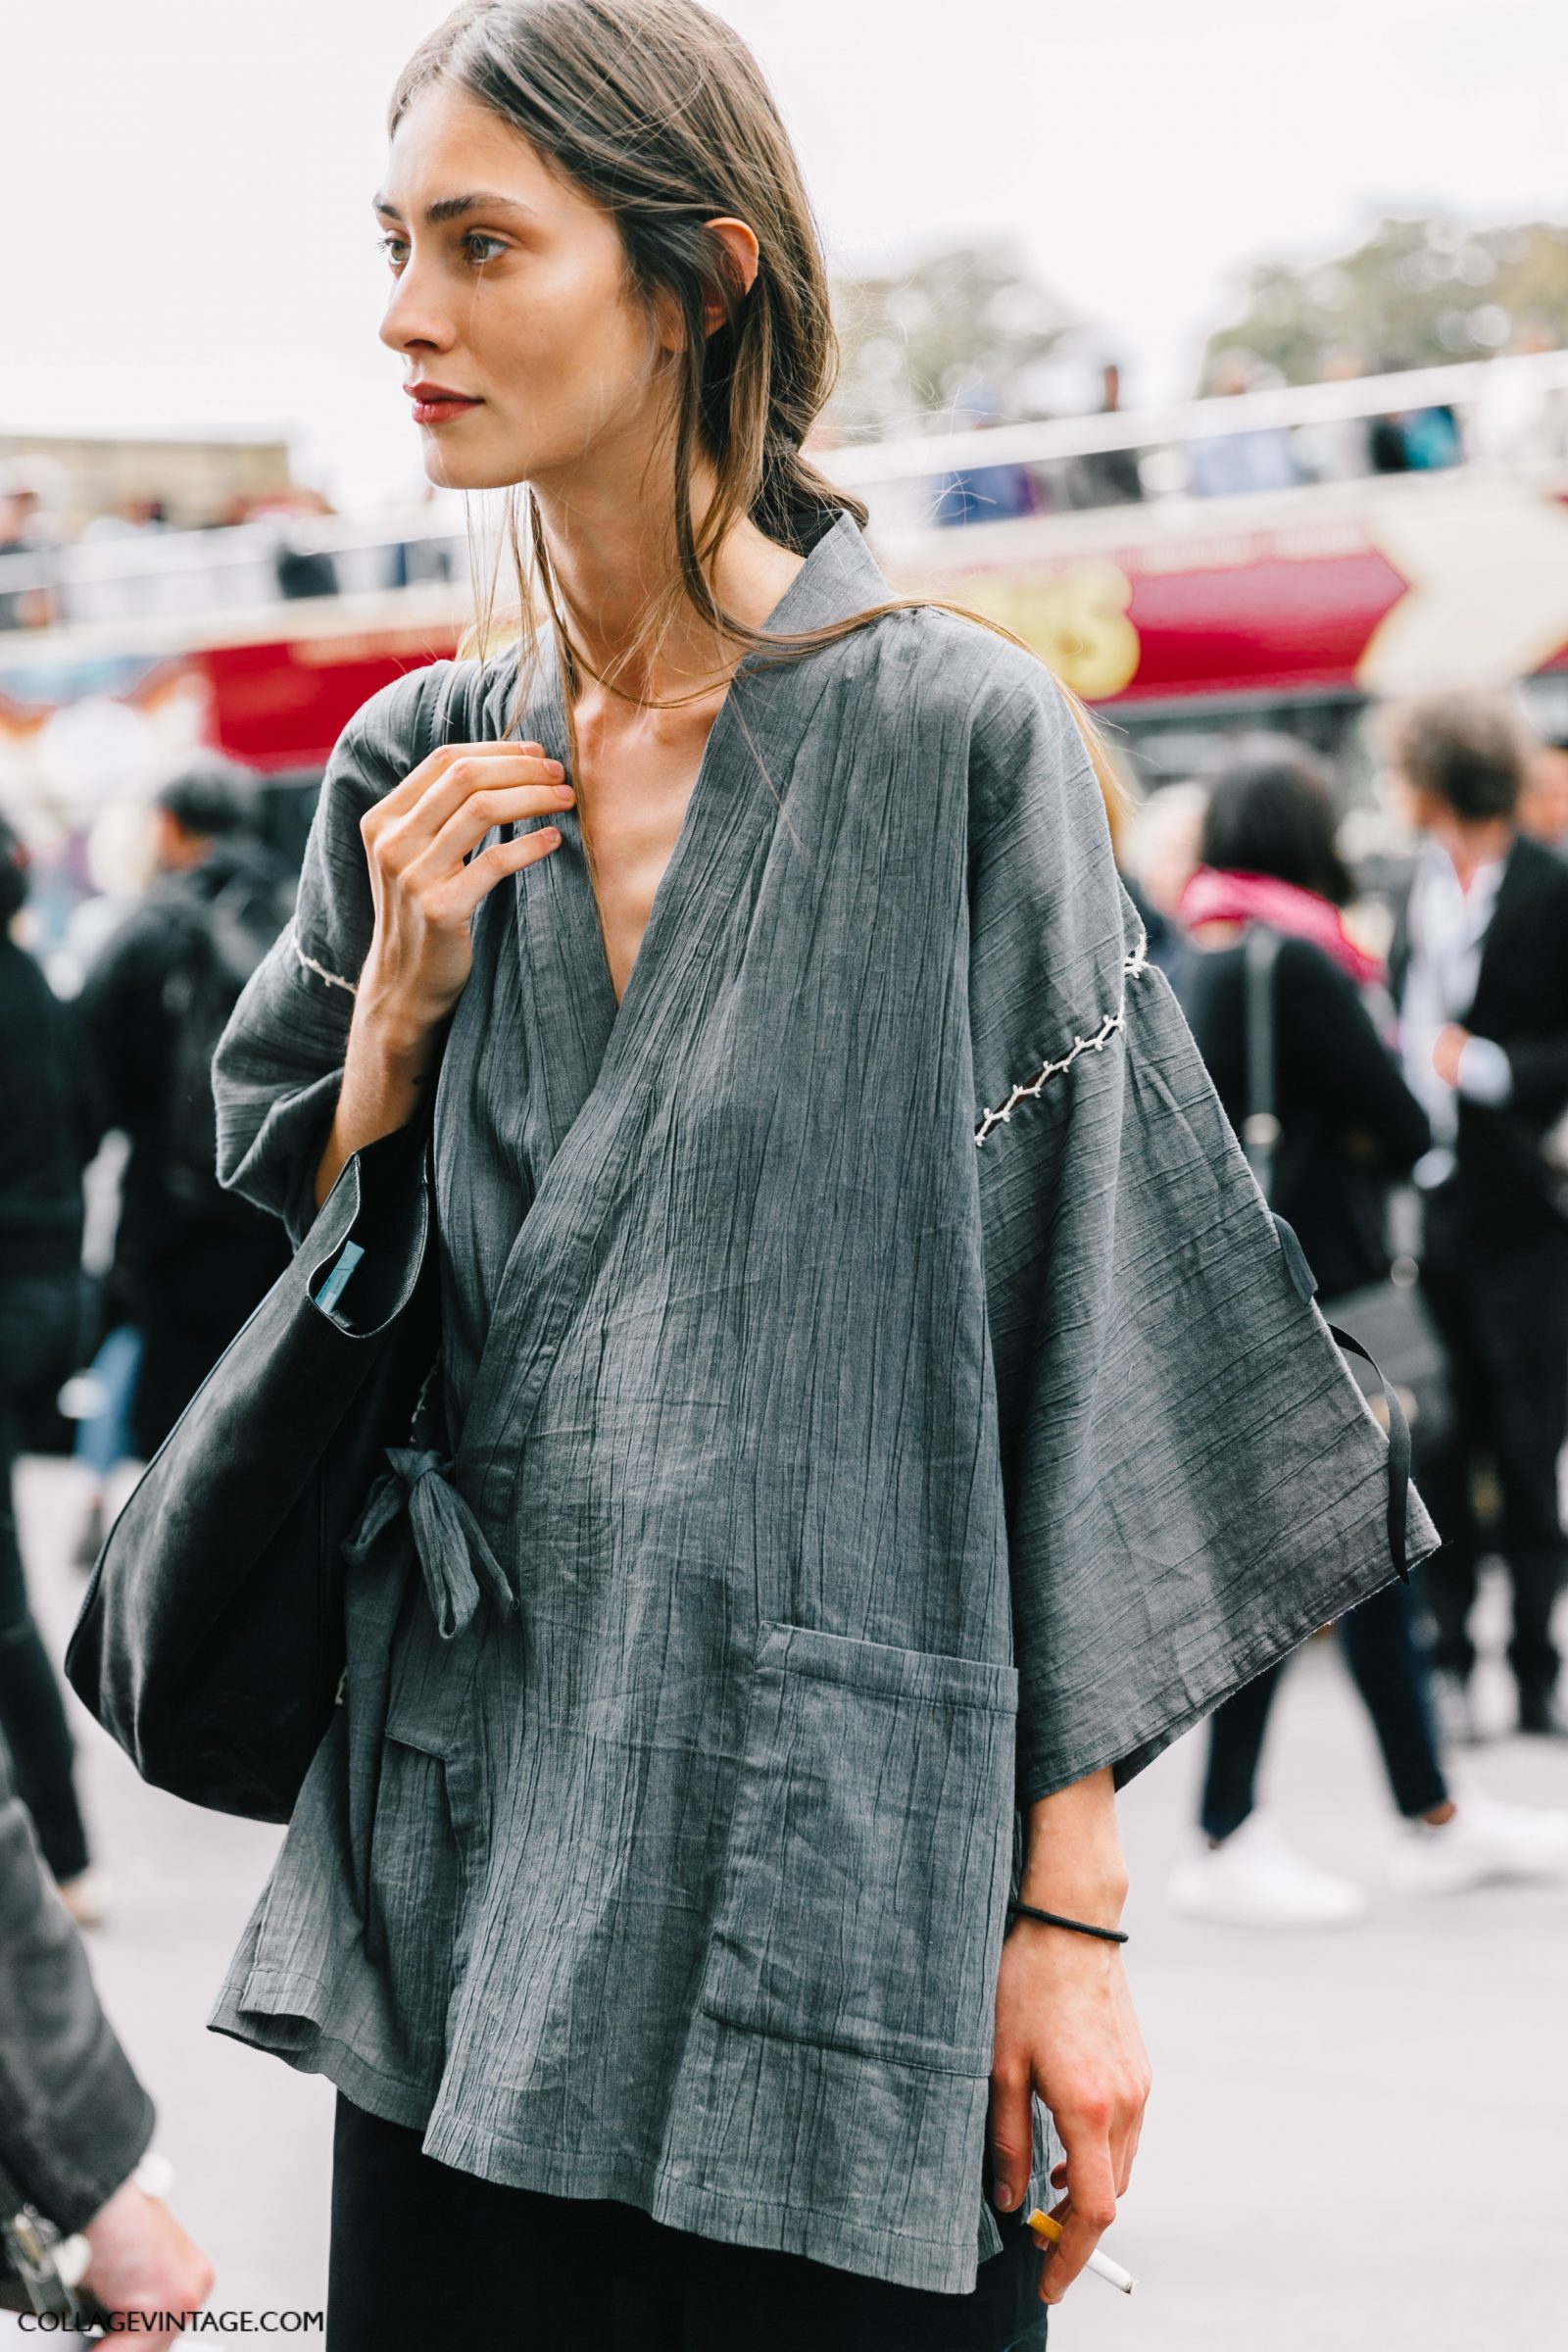 pfw-paris_fashion_week_ss17-street_style-outfits-collage_vintage-chloe-carven-balmain-barbara_bui-162